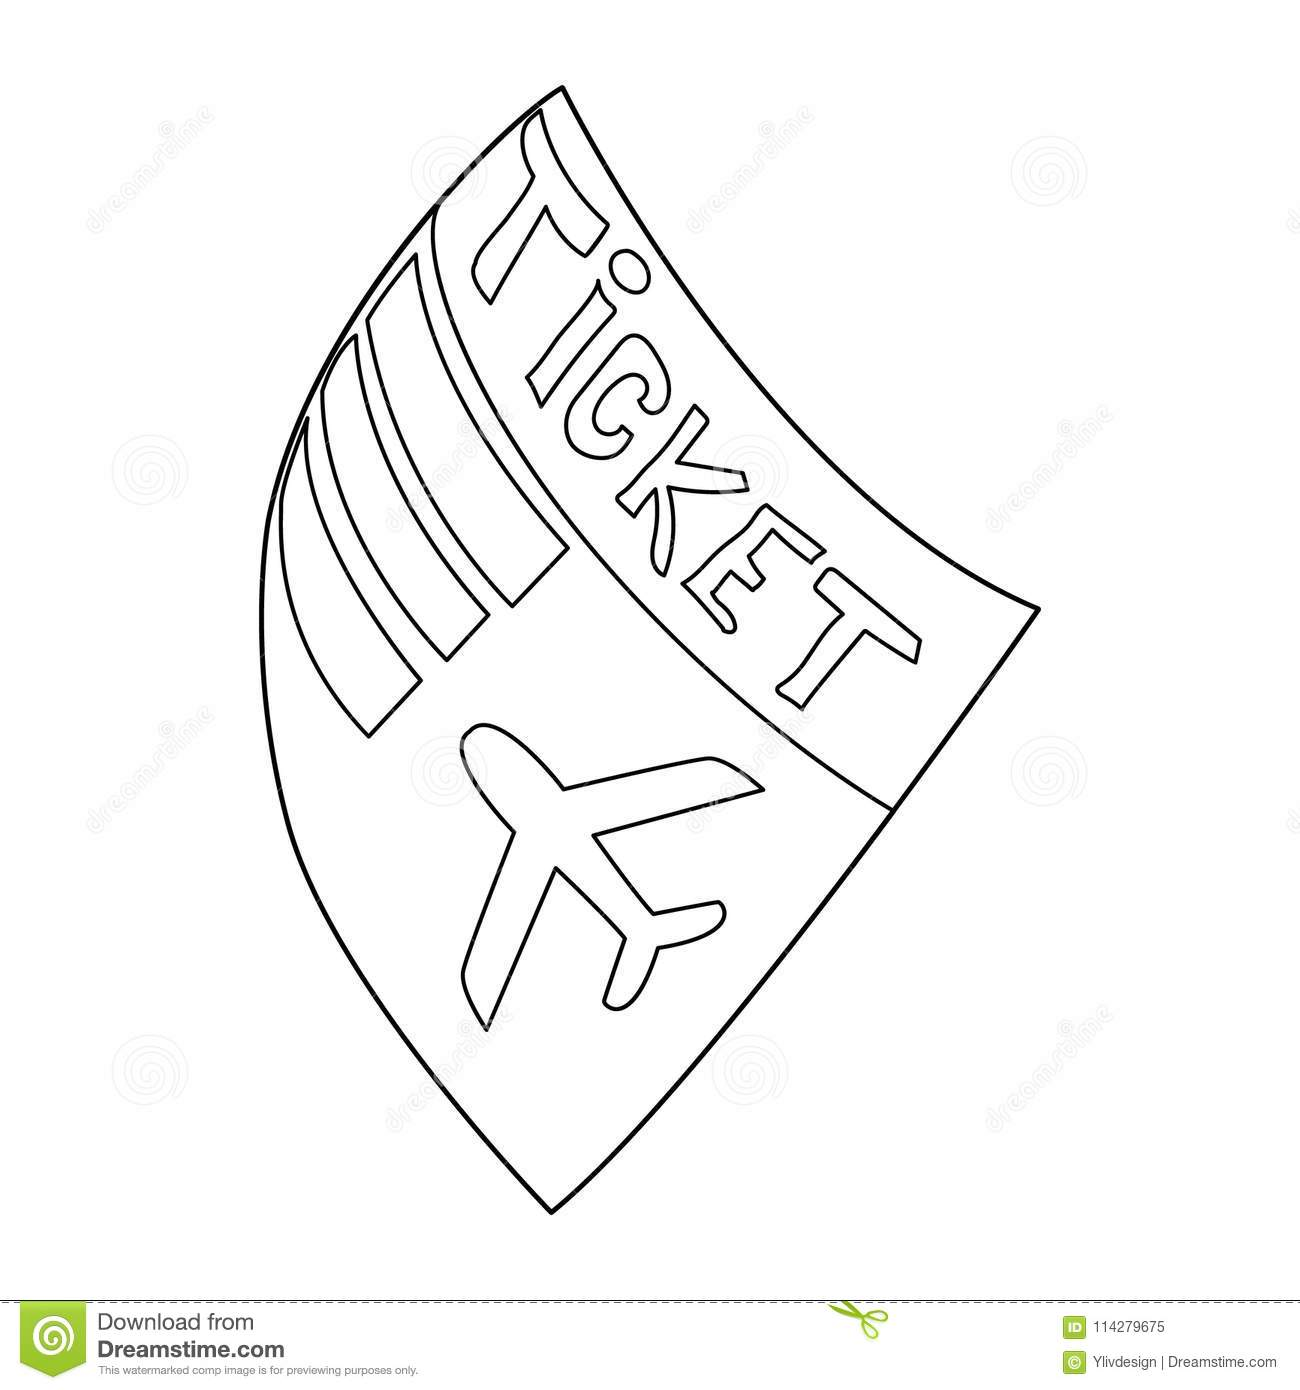 Plane Ticket Drawing Outline Wiring Diagrams Simple 555 Vco Circuit Diagram Tradeoficcom Airline Icon Style Stock Vector Illustration Of Rh Dreamstime Com Blank Airplane